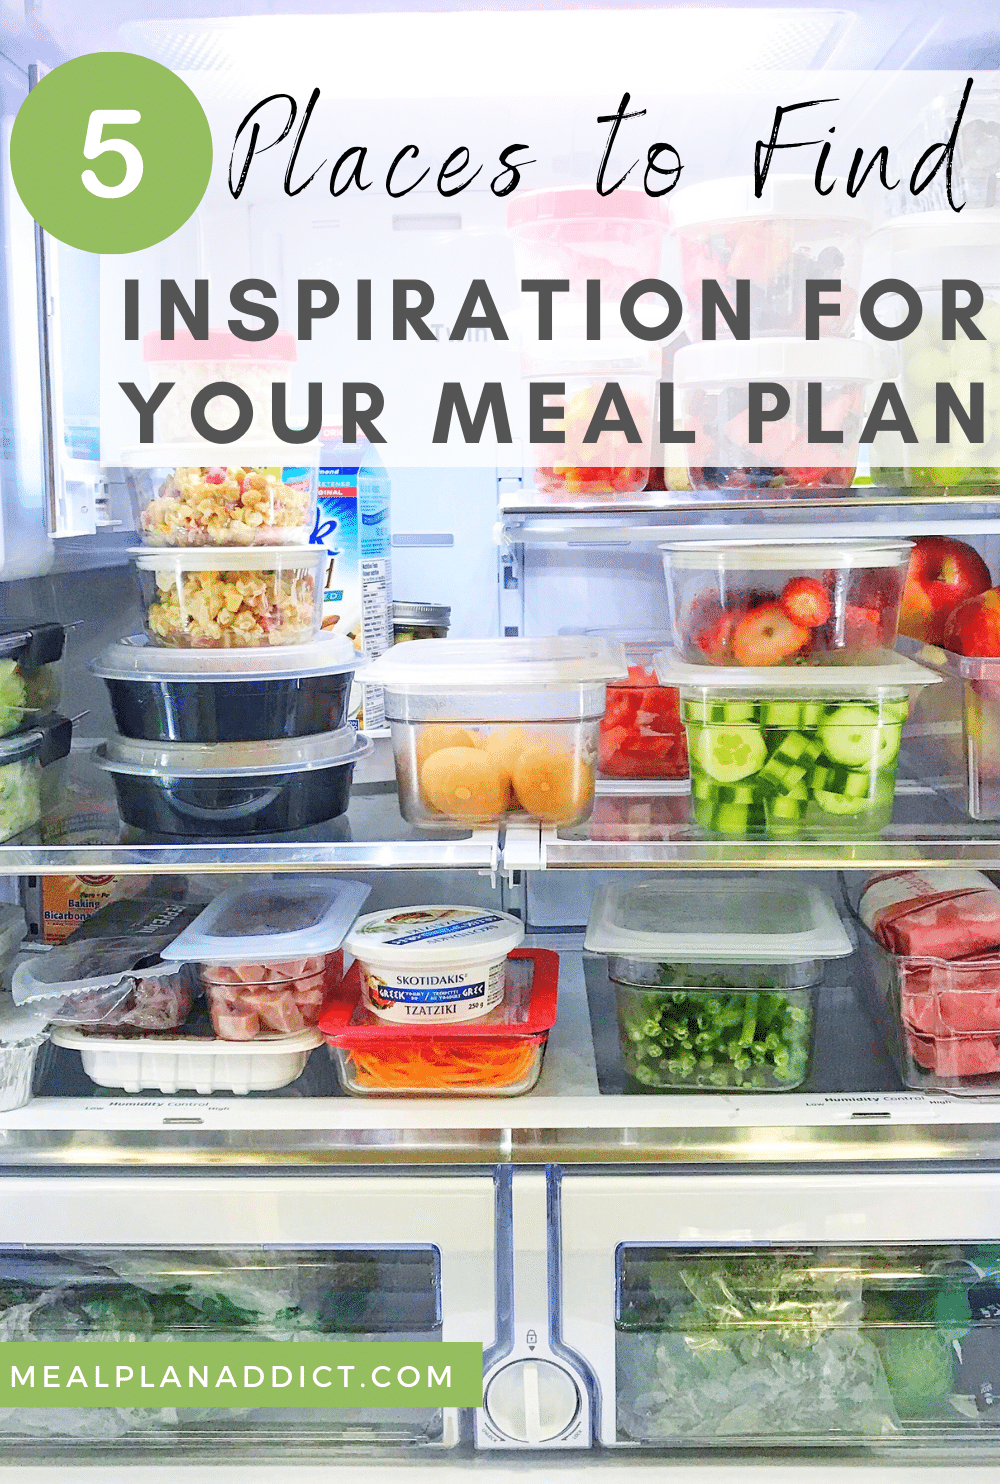 5 Places to Find Inspiration for Your Meal Plan